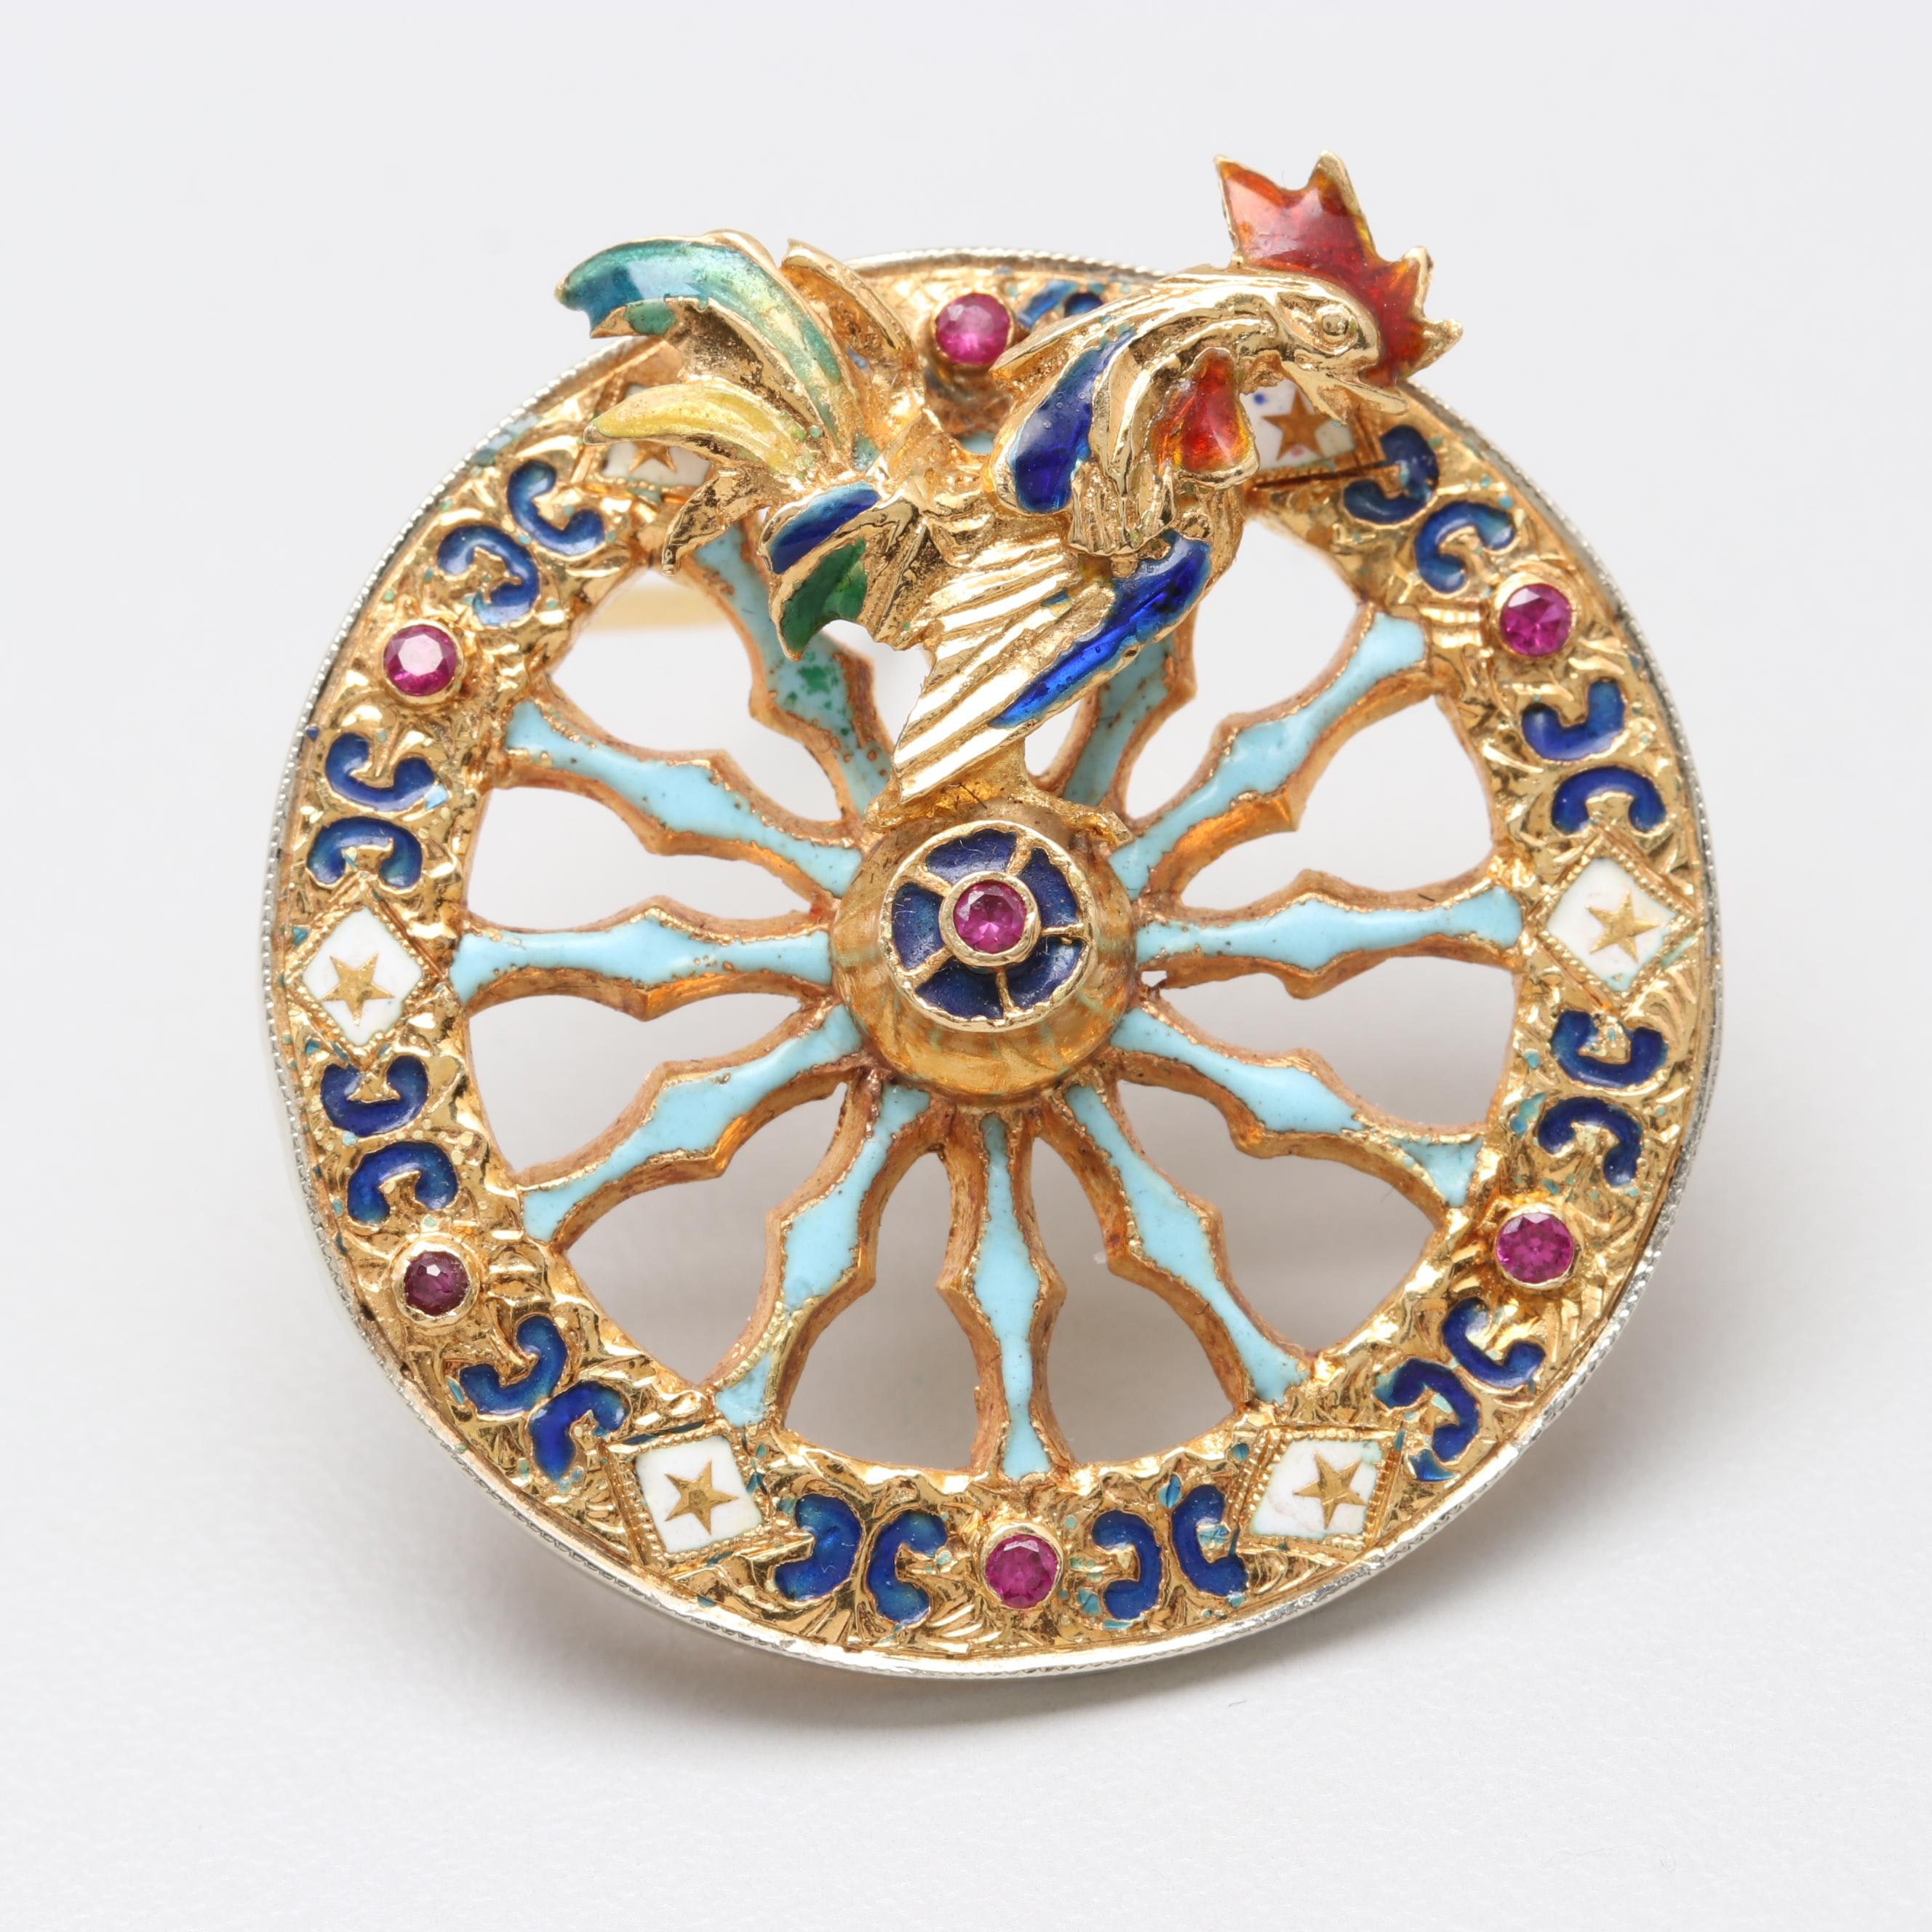 Italian 18K Yellow Gold Synthetic Ruby and Enamel Brooch Featuring Rooster